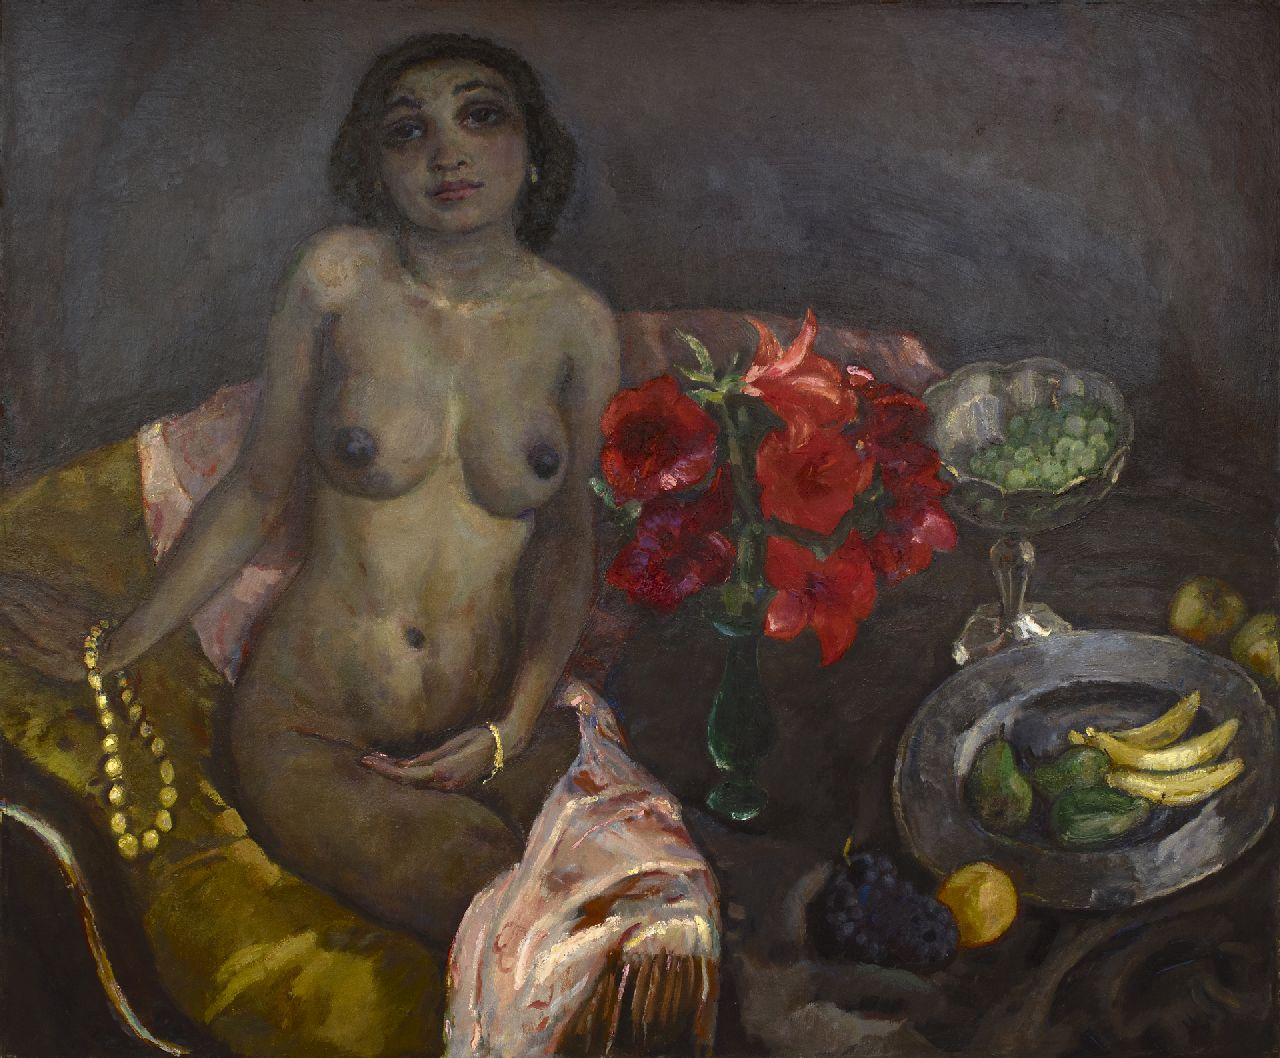 Sluijters J.C.B.  | Johannes Carolus Bernardus 'Jan' Sluijters | Paintings offered for sale | Seated nude with still life, oil on canvas 116.7 x 140.3 cm, signed c.l. and painted ca. 1927